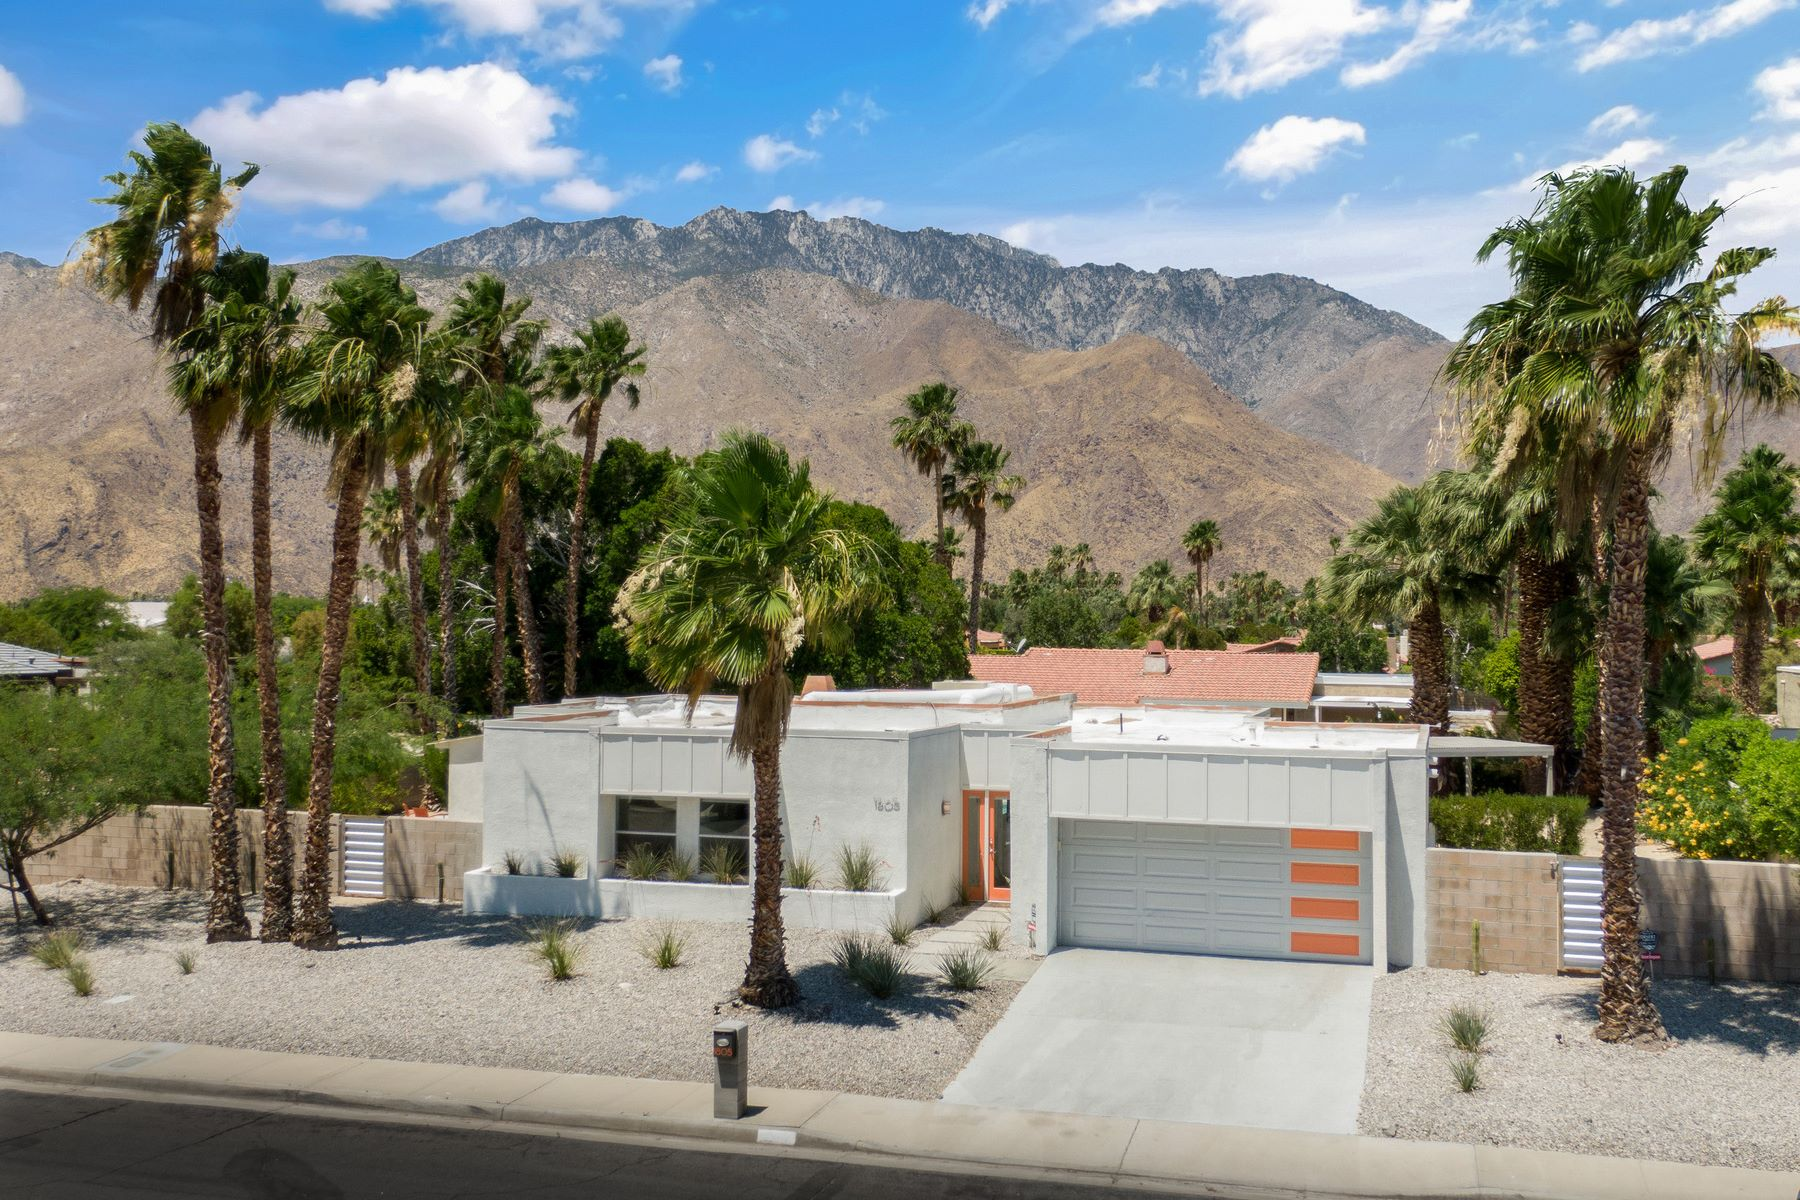 Single Family Homes for Sale at 1805 North Nogales Way 1805 N Nogales Way Palm Springs, California 92262 United States